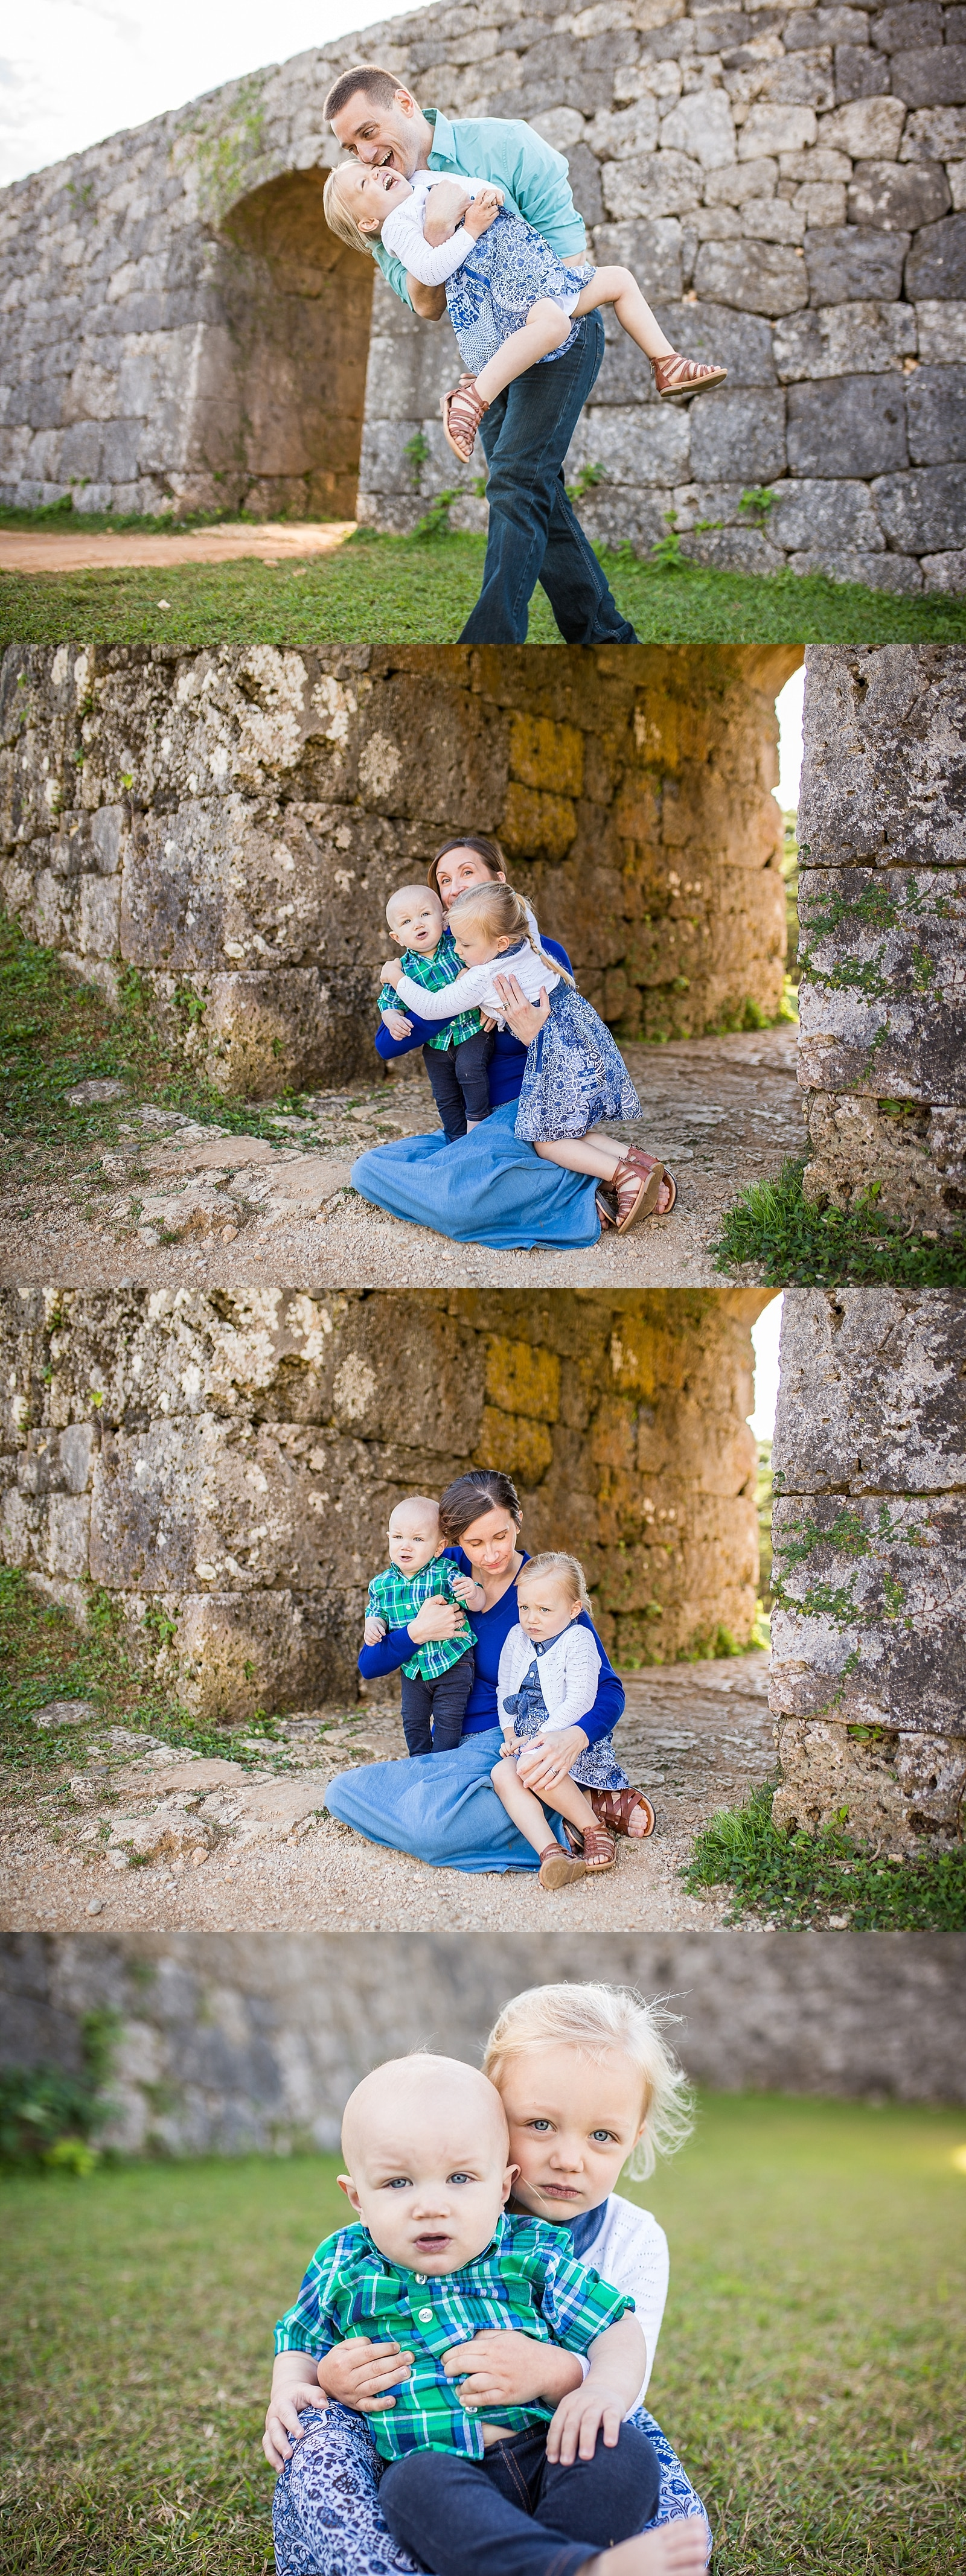 Family of four, infant and preschooler, at zakimi castle in okinawa japan by alison bell photographer